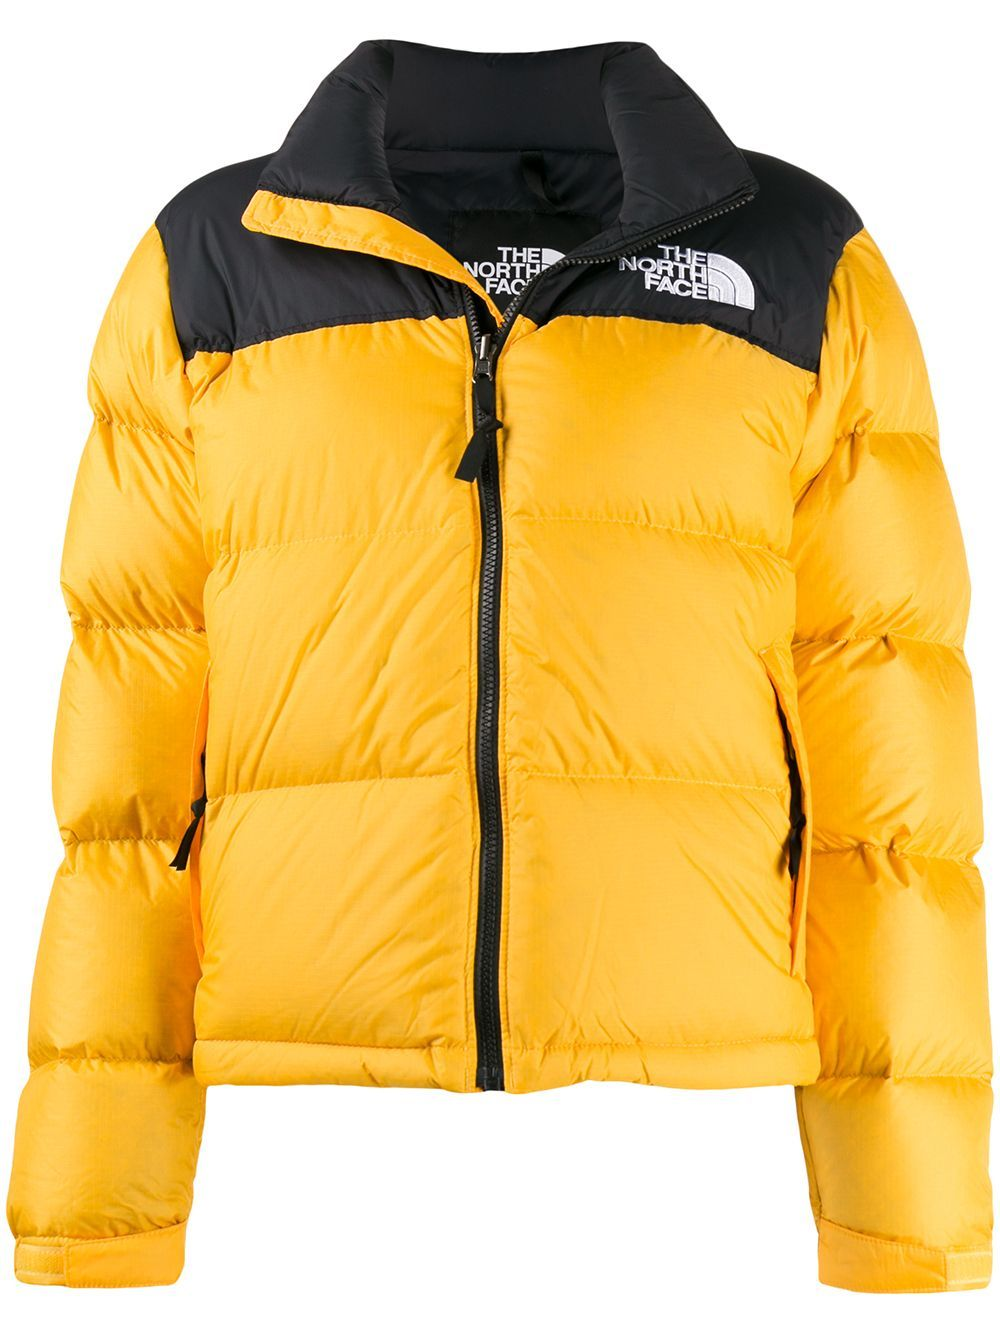 The North Face Two Tone Puffer Jacket Farfetch Yellow Puffer Jacket The North Face North Face Puffer Jacket [ 1334 x 1000 Pixel ]